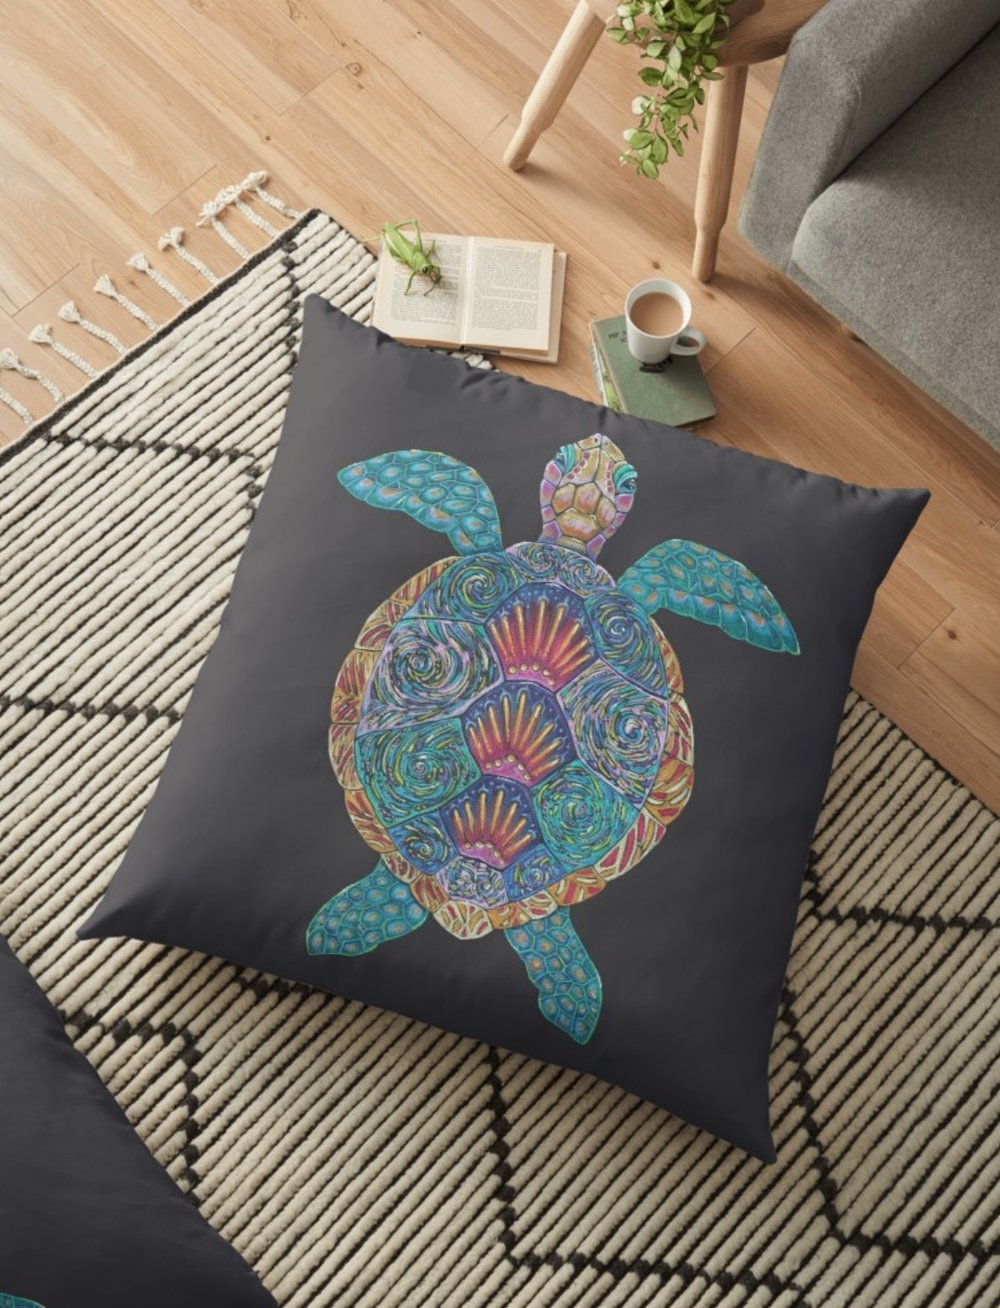 Turtle Totem available on home decor items on Redbubble